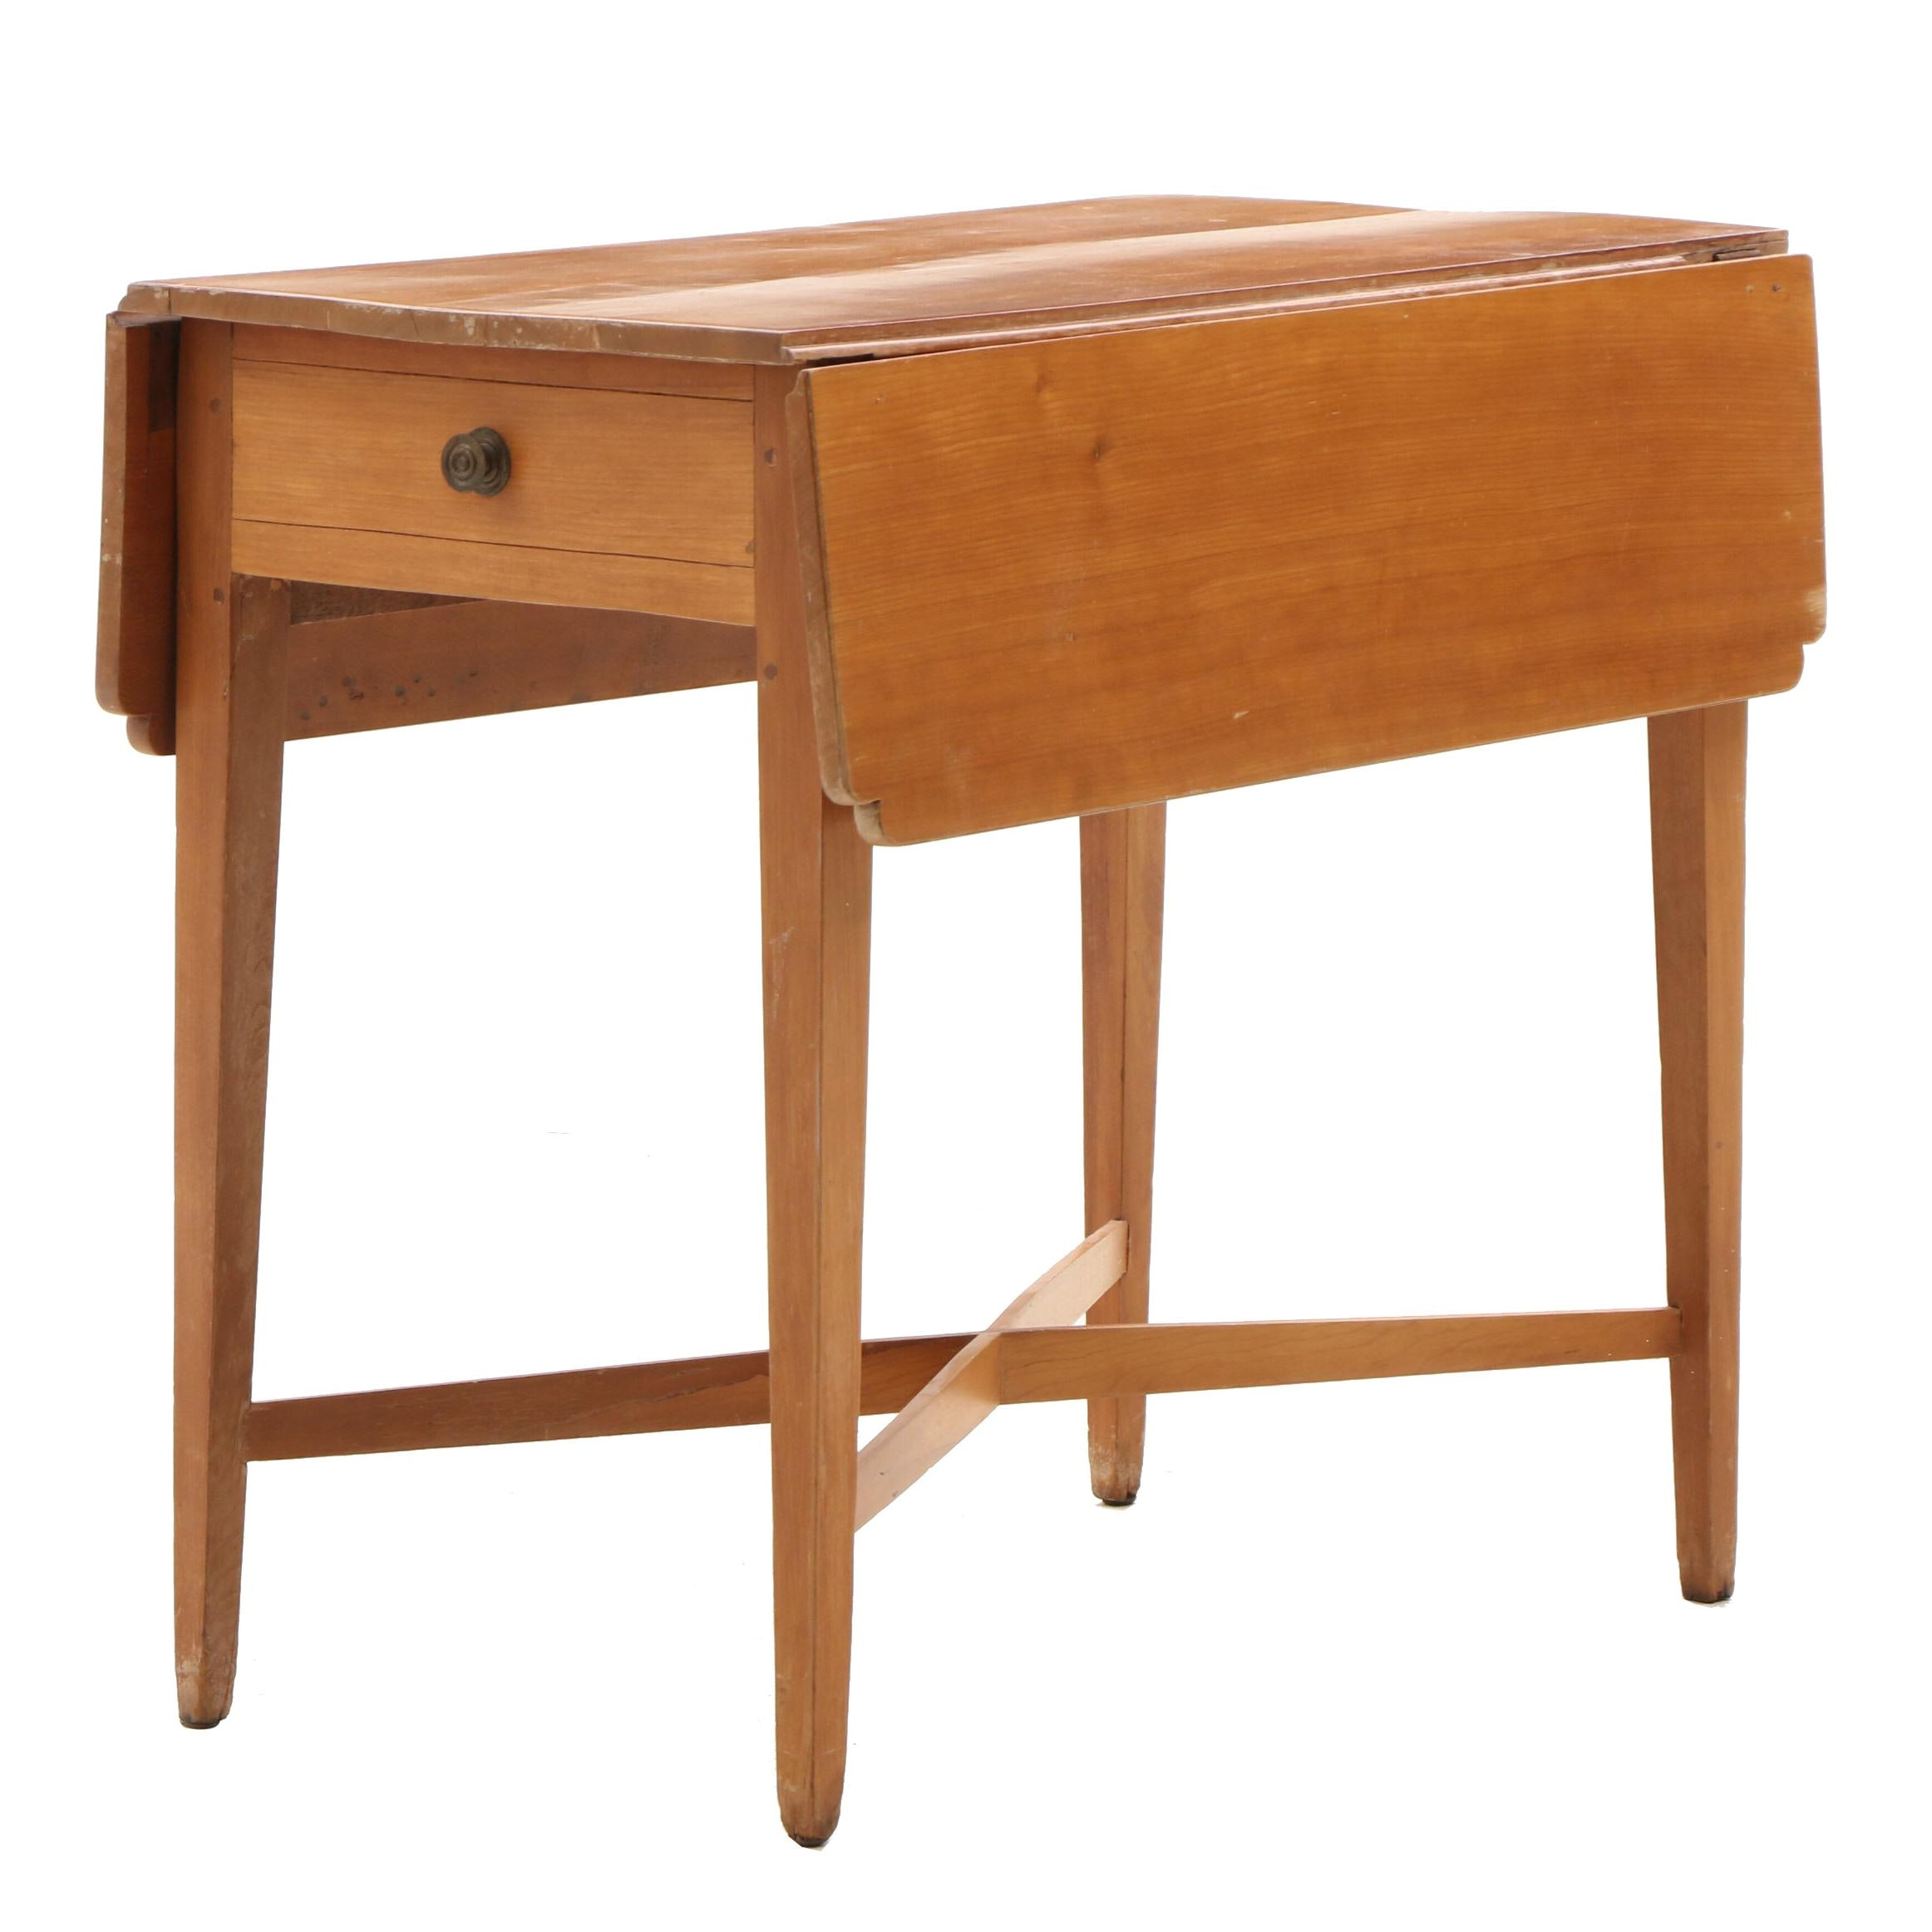 Federal Pembroke Table in Cherry